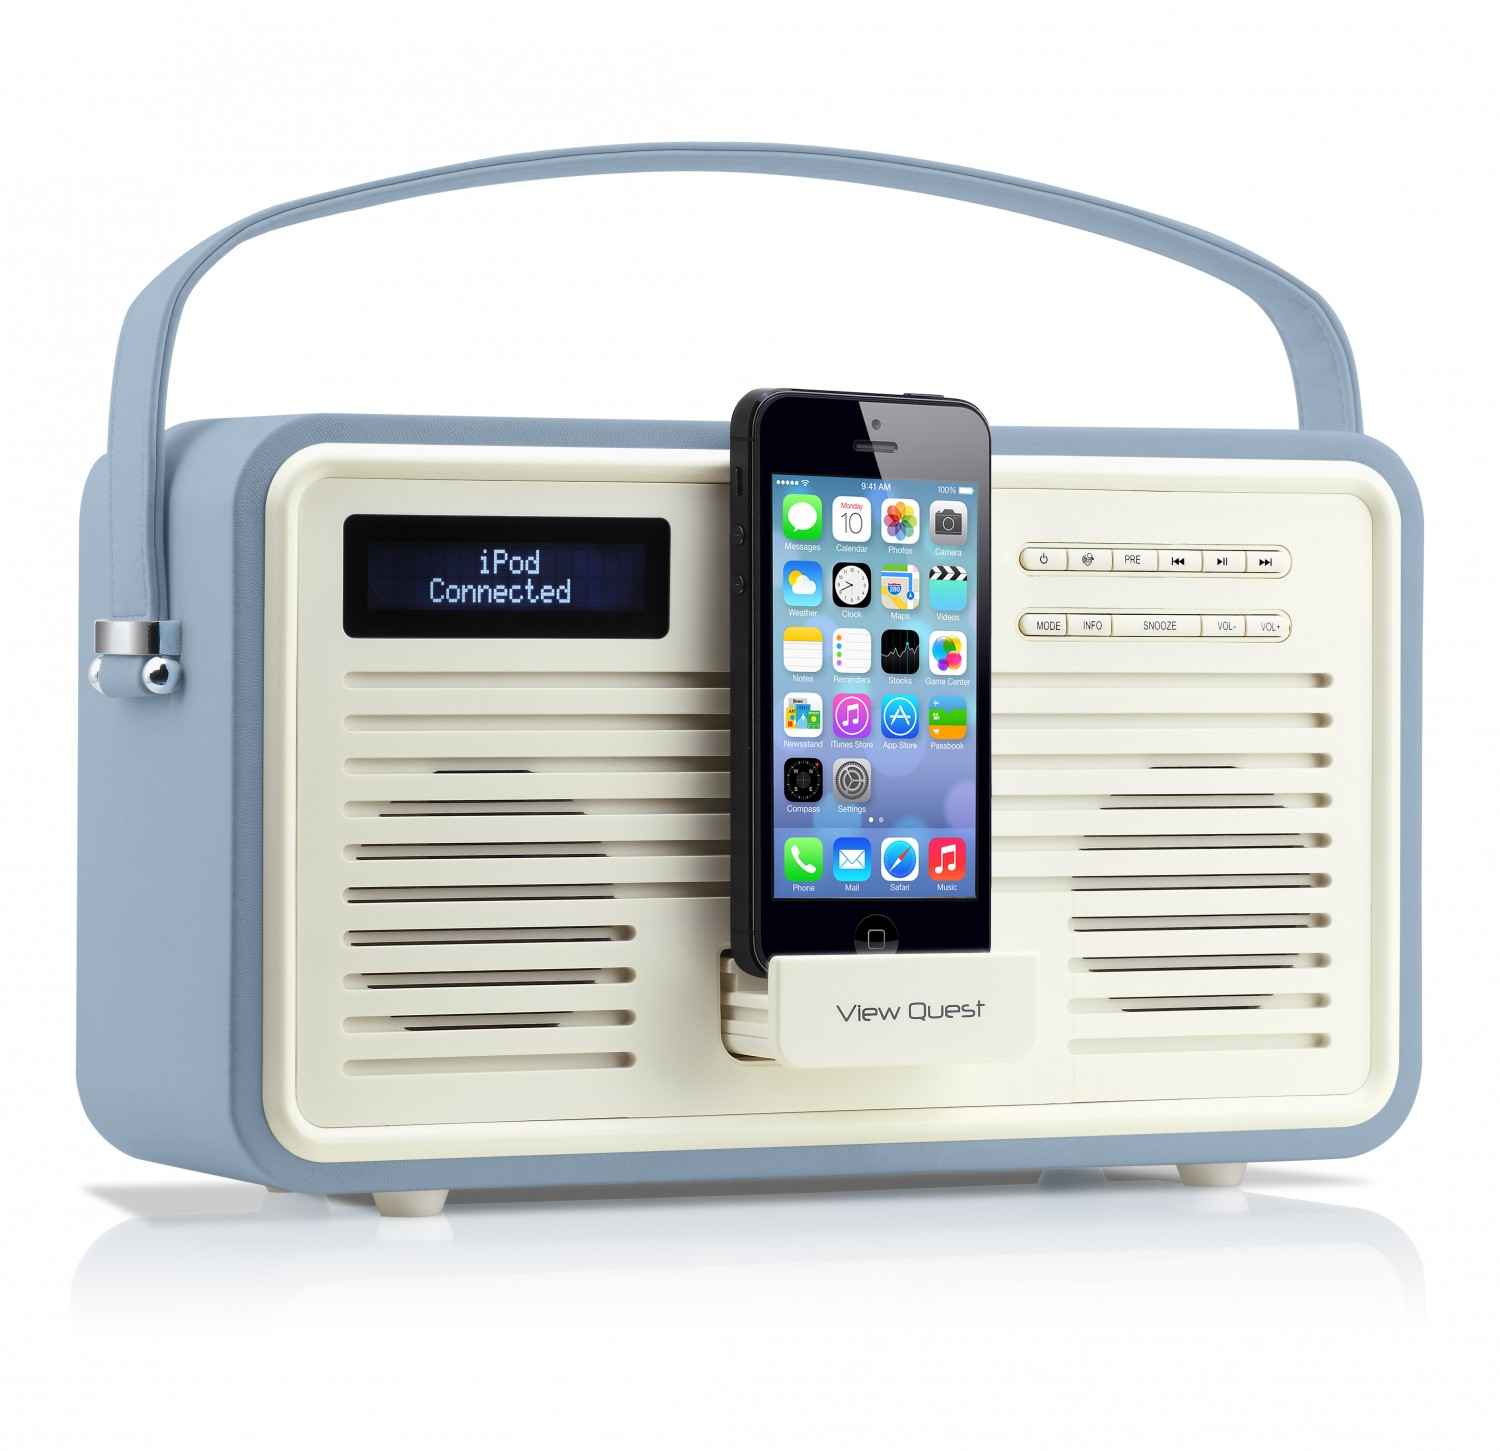 view quest retro fm dab radio lautsprecher iphone dockingstation lightning blau ebay. Black Bedroom Furniture Sets. Home Design Ideas